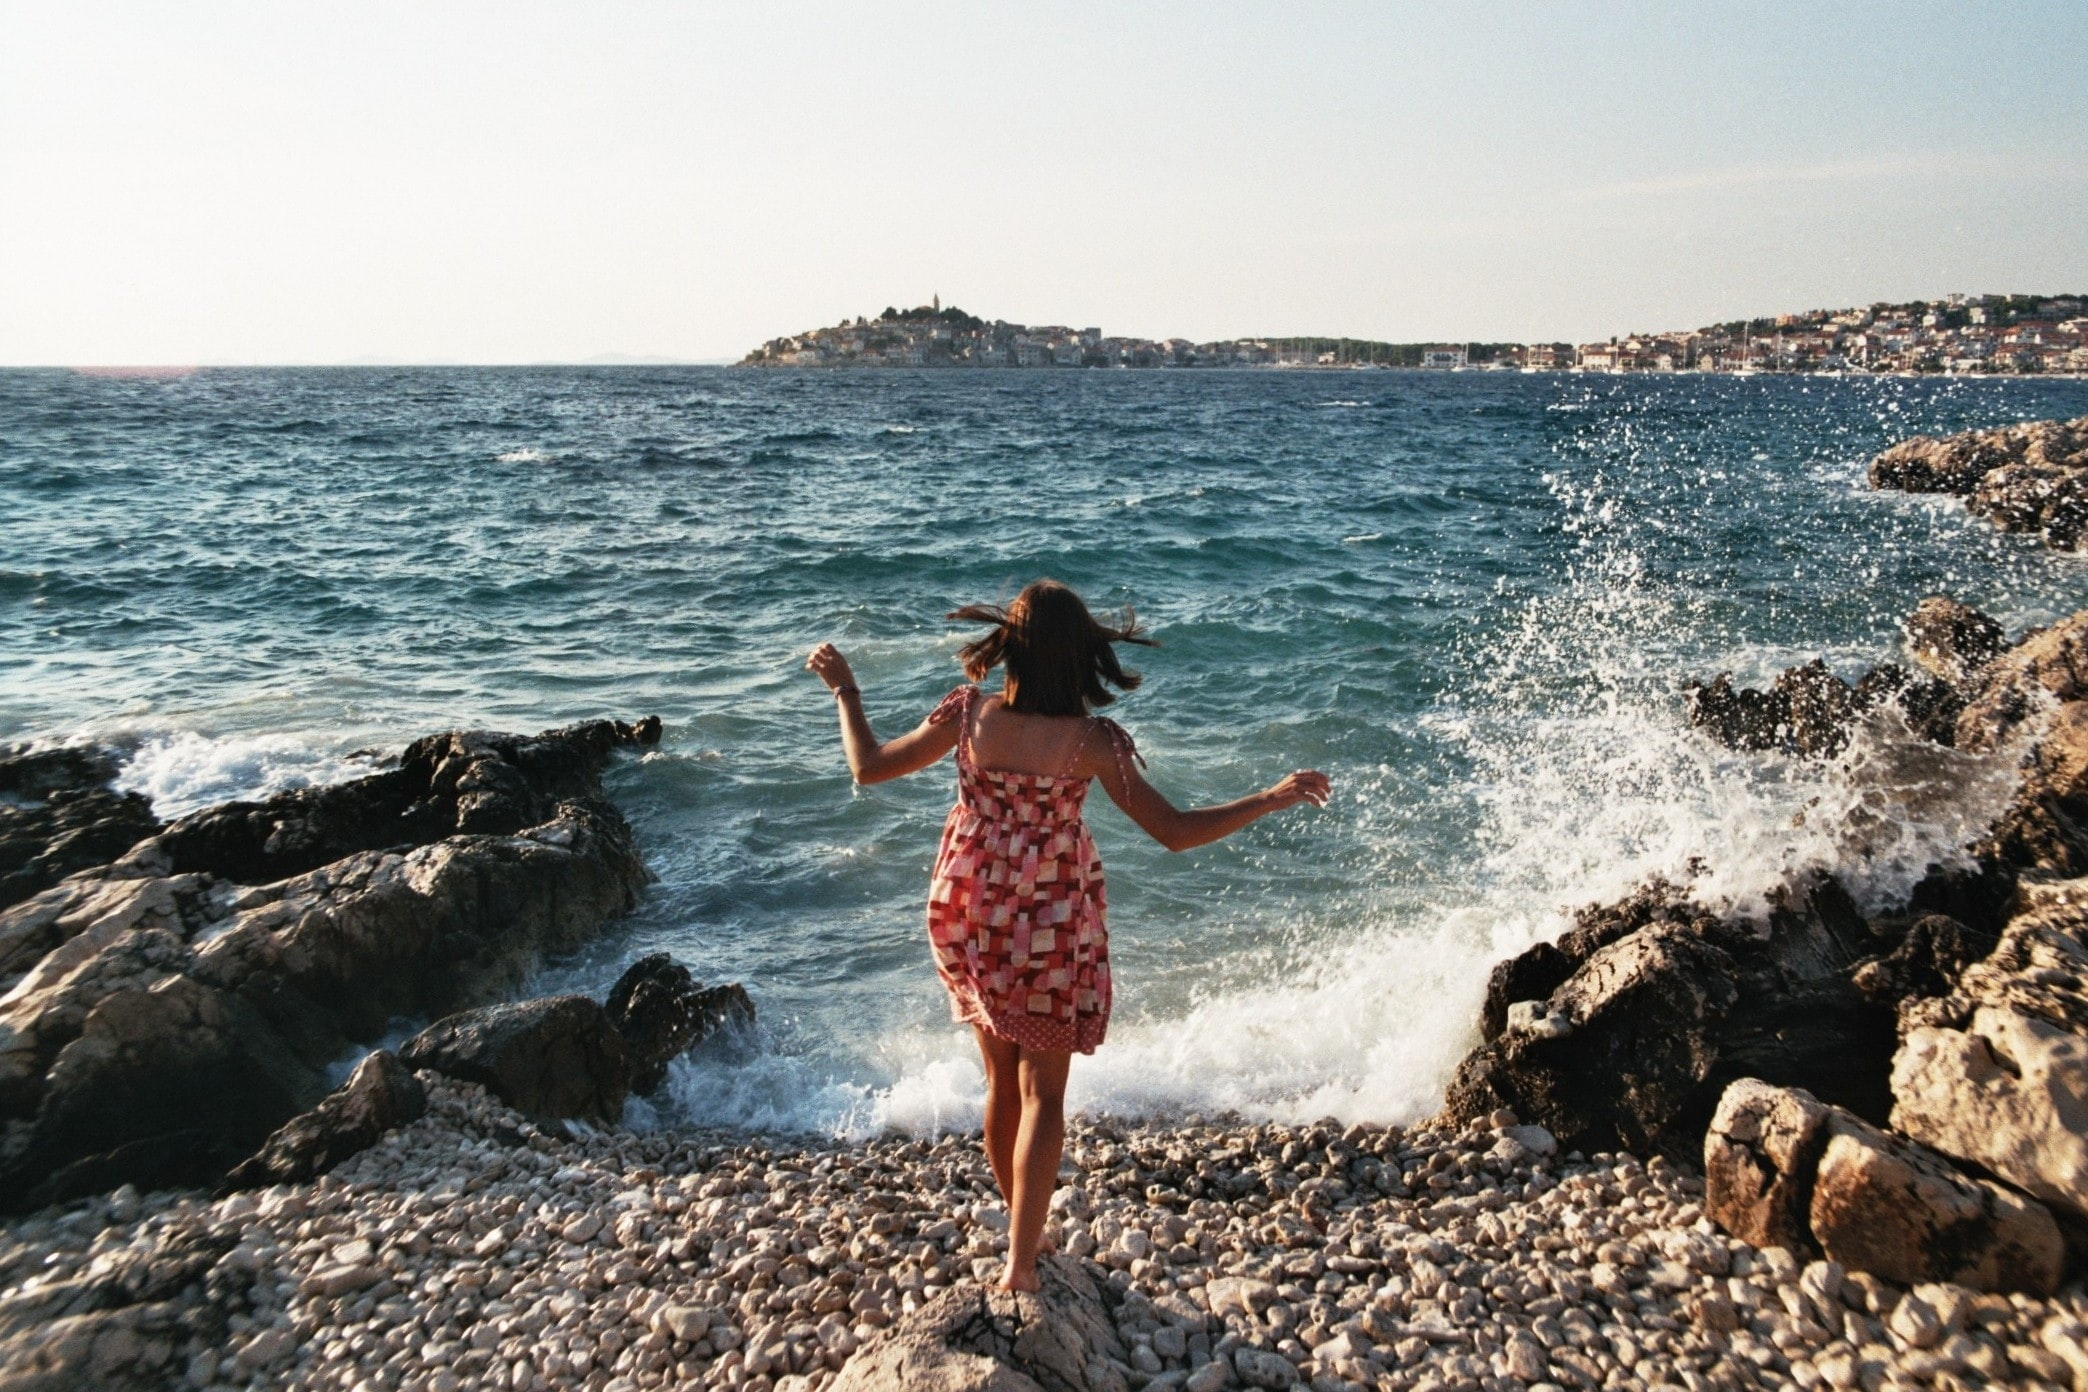 A woman in a dress standing on a rock on the coast with waves crashing against the nearby rocks